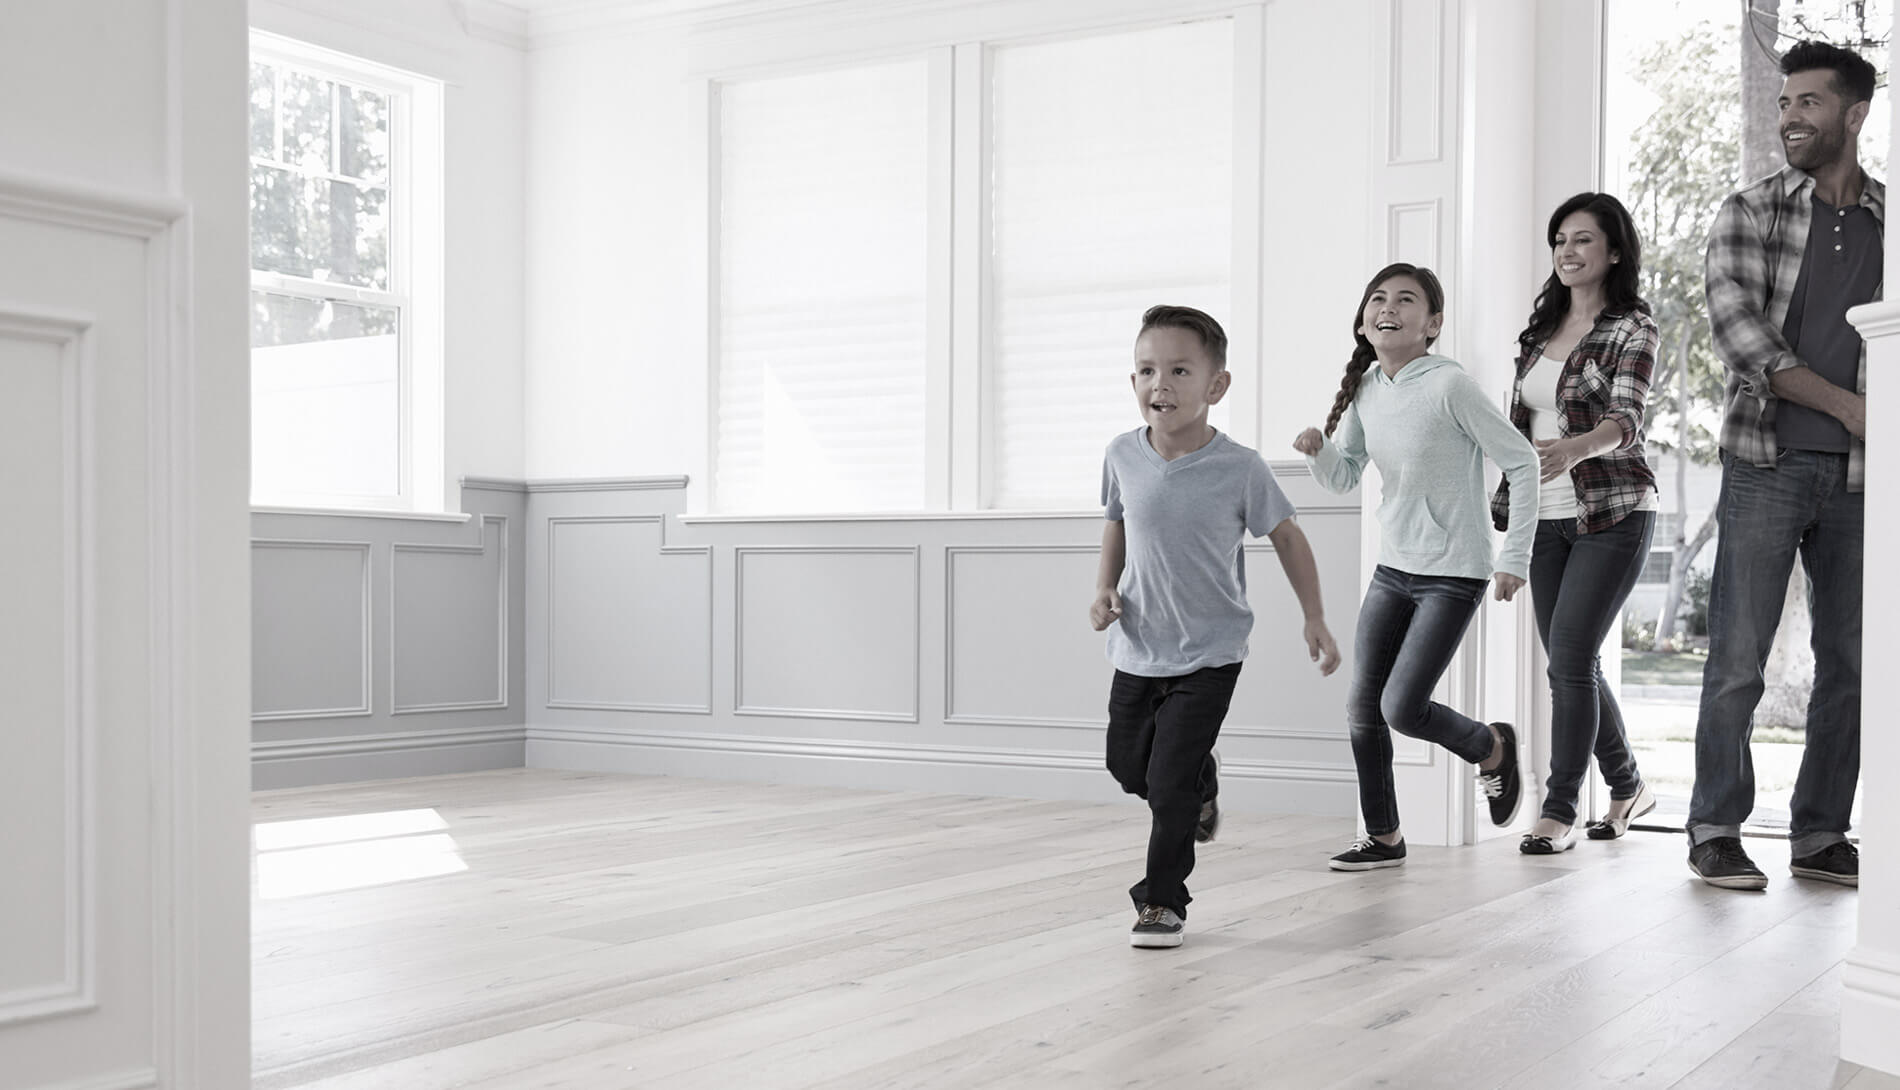 Family entering empty house together